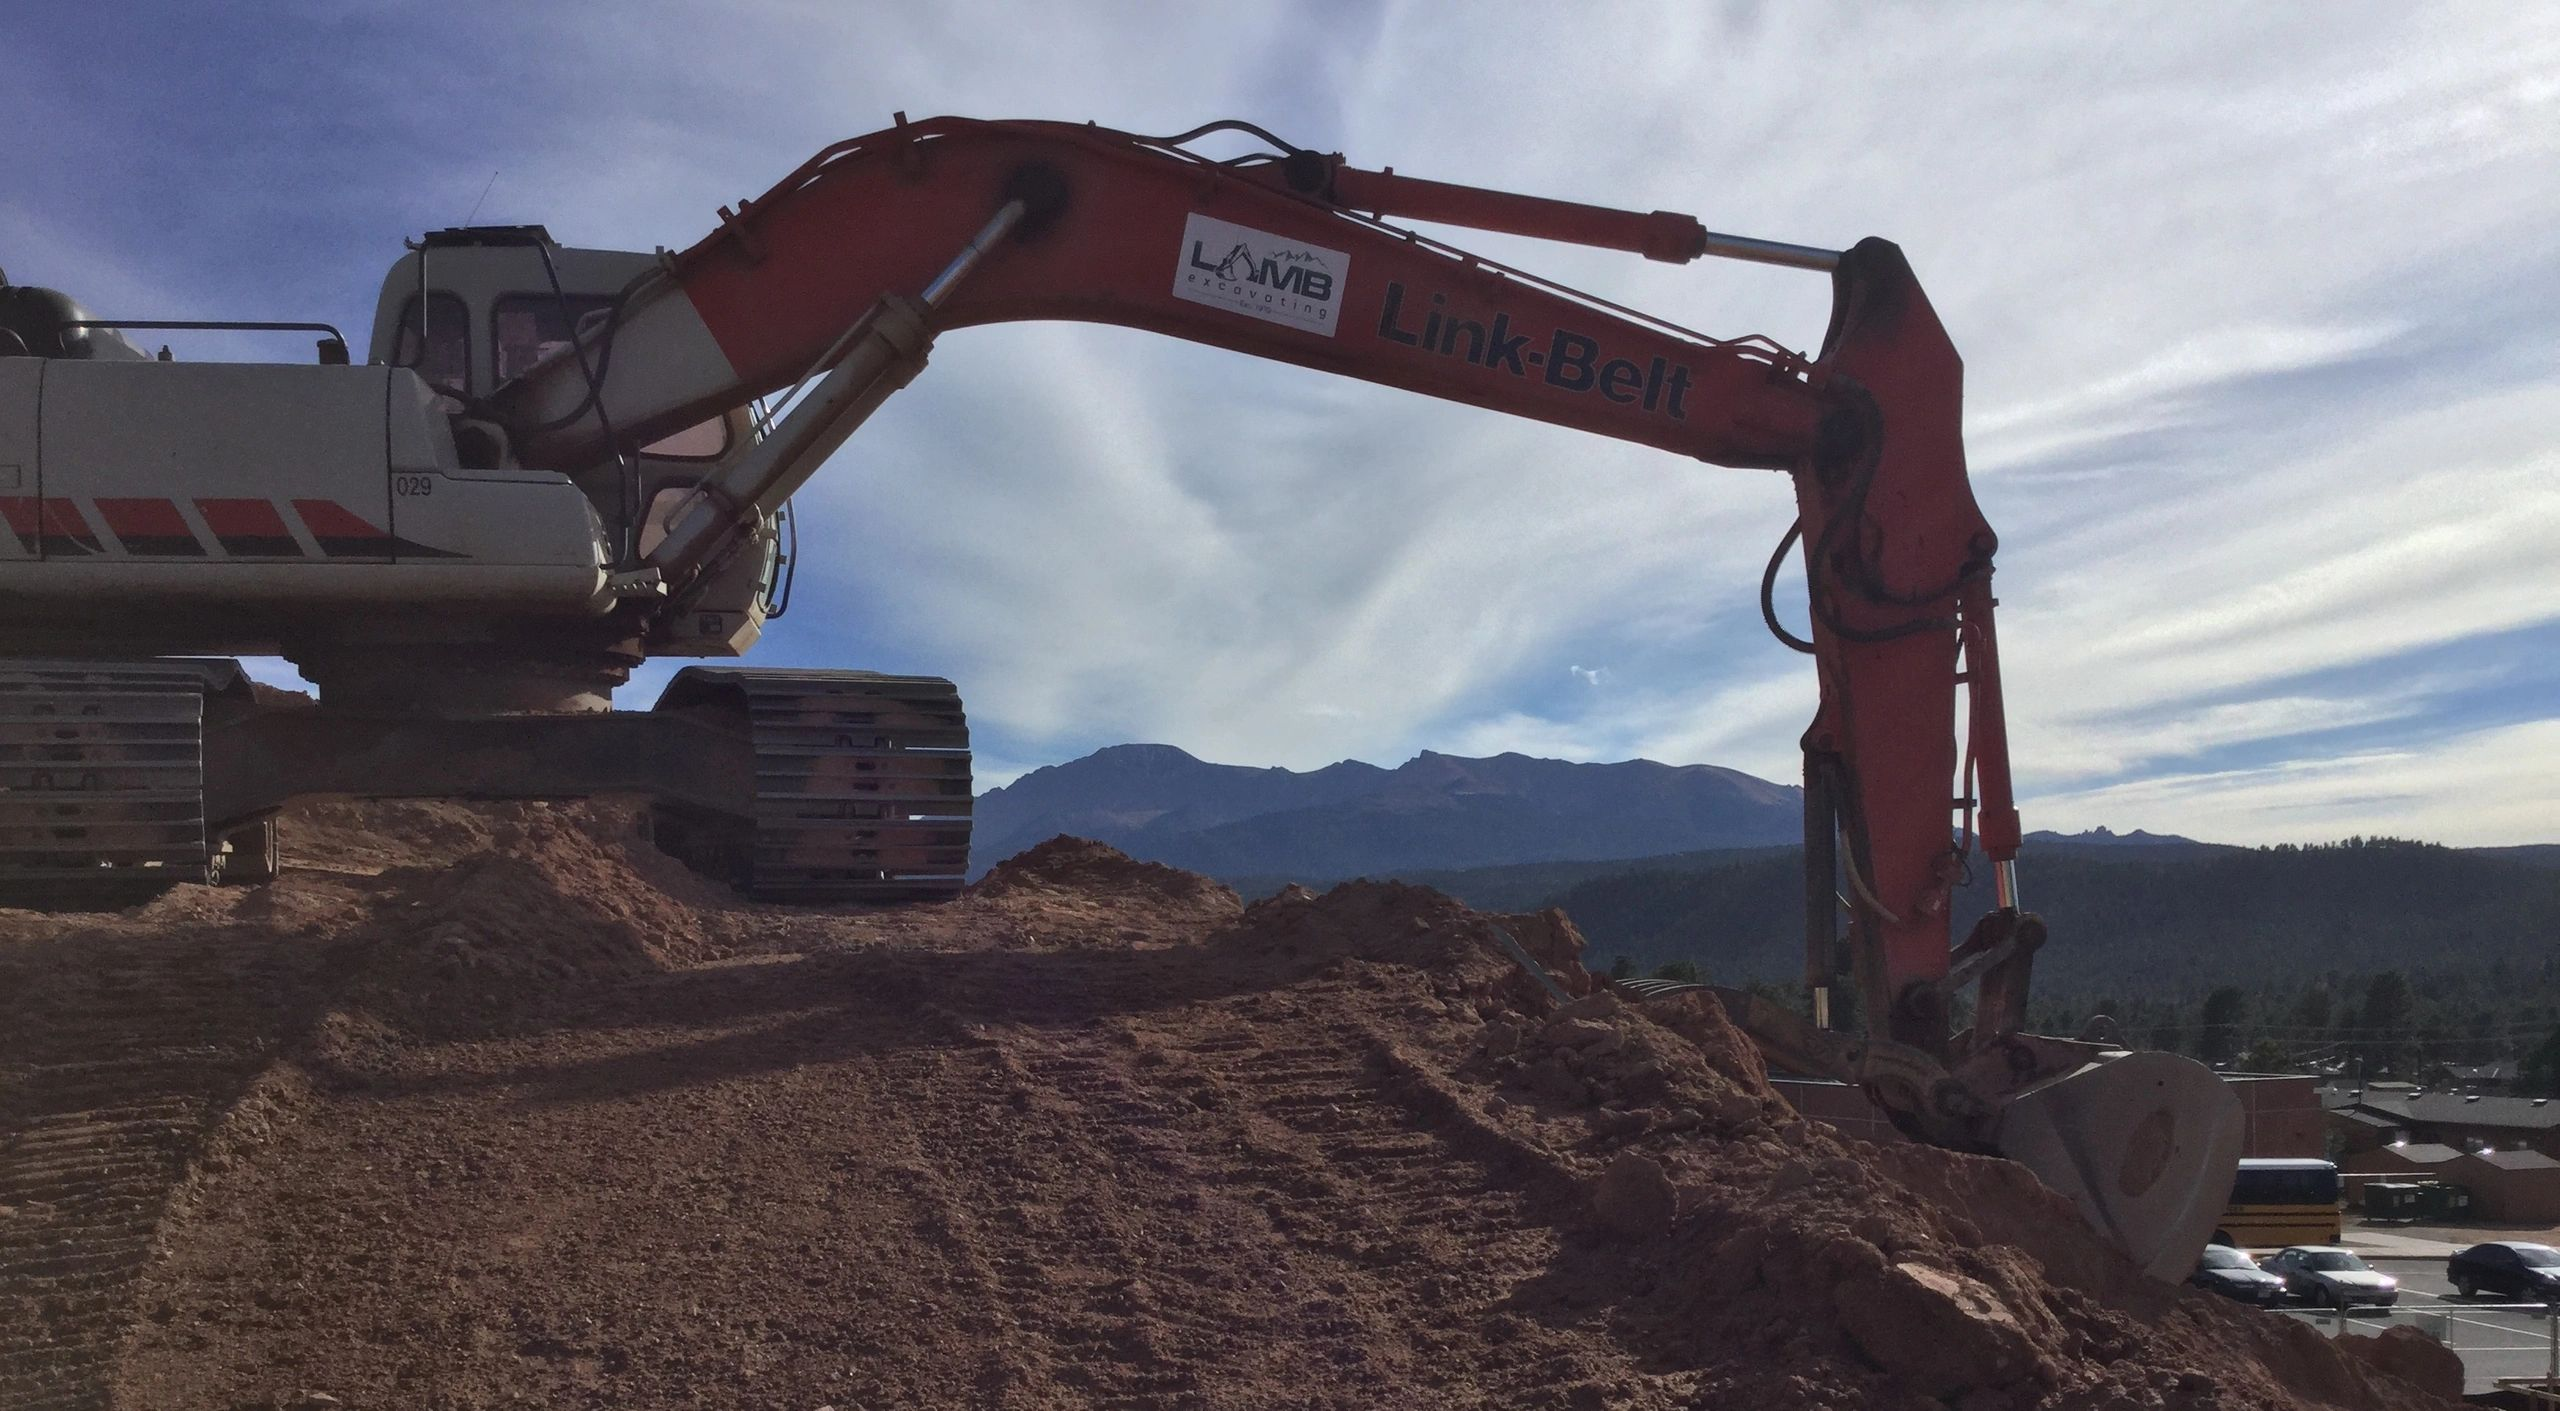 Excavation with a View of Pikes Peak - we LOVE what we do!